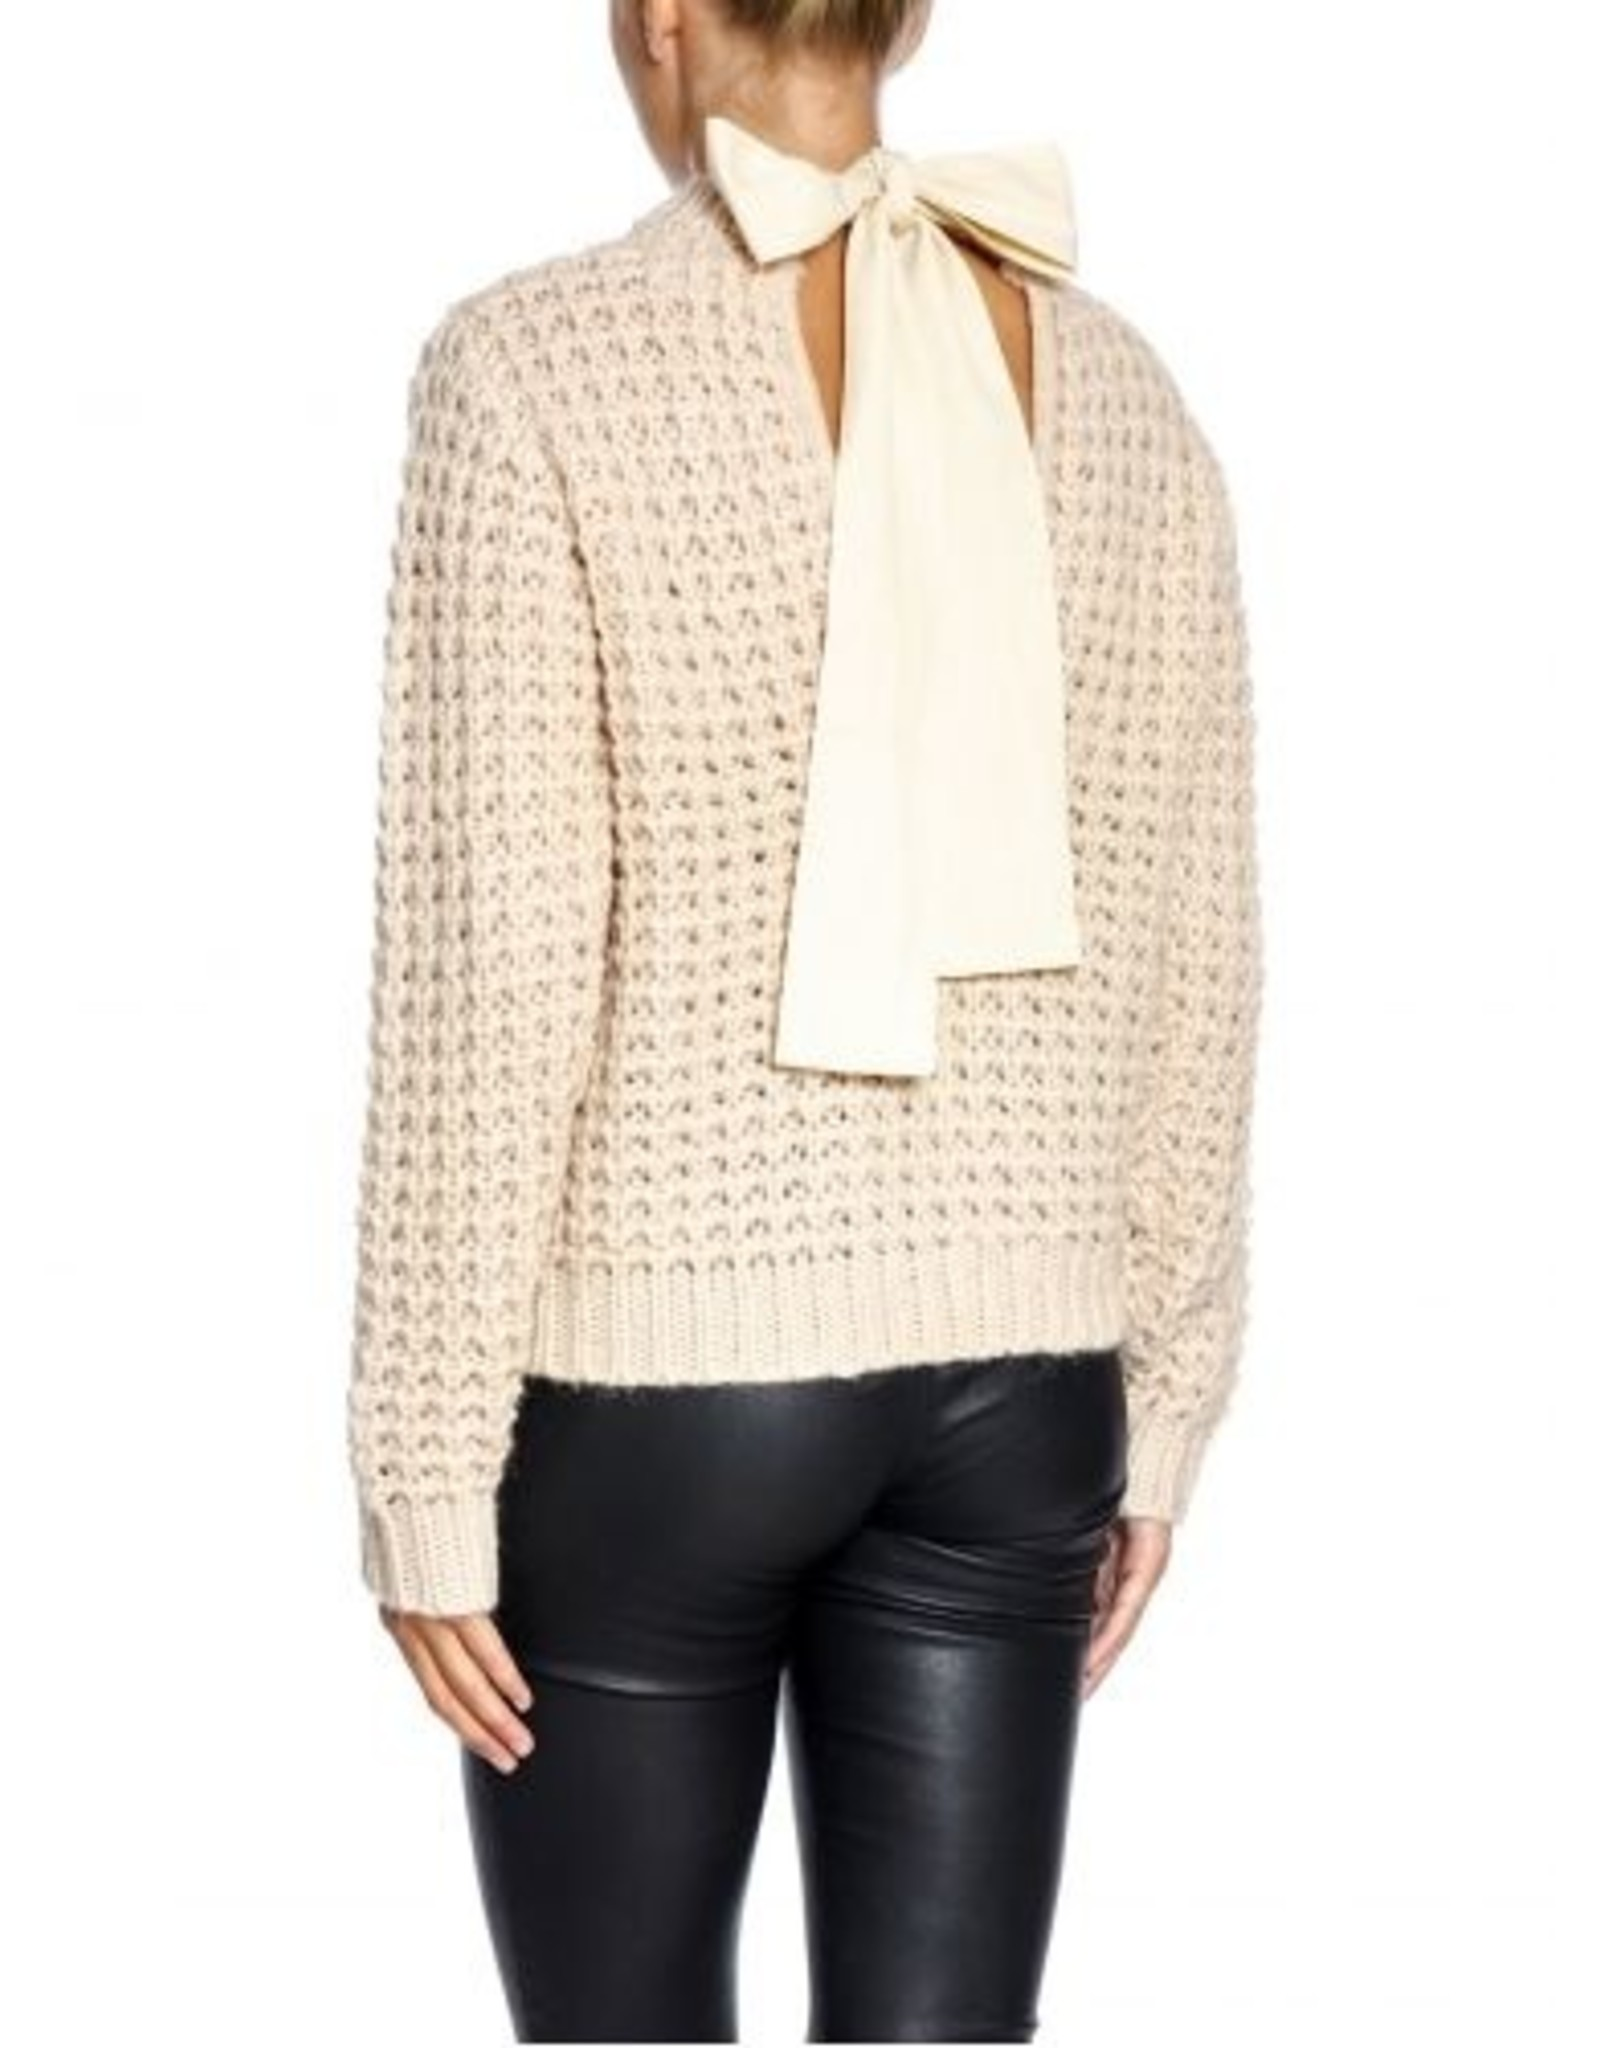 OATMEAL KNIT WITH BOW